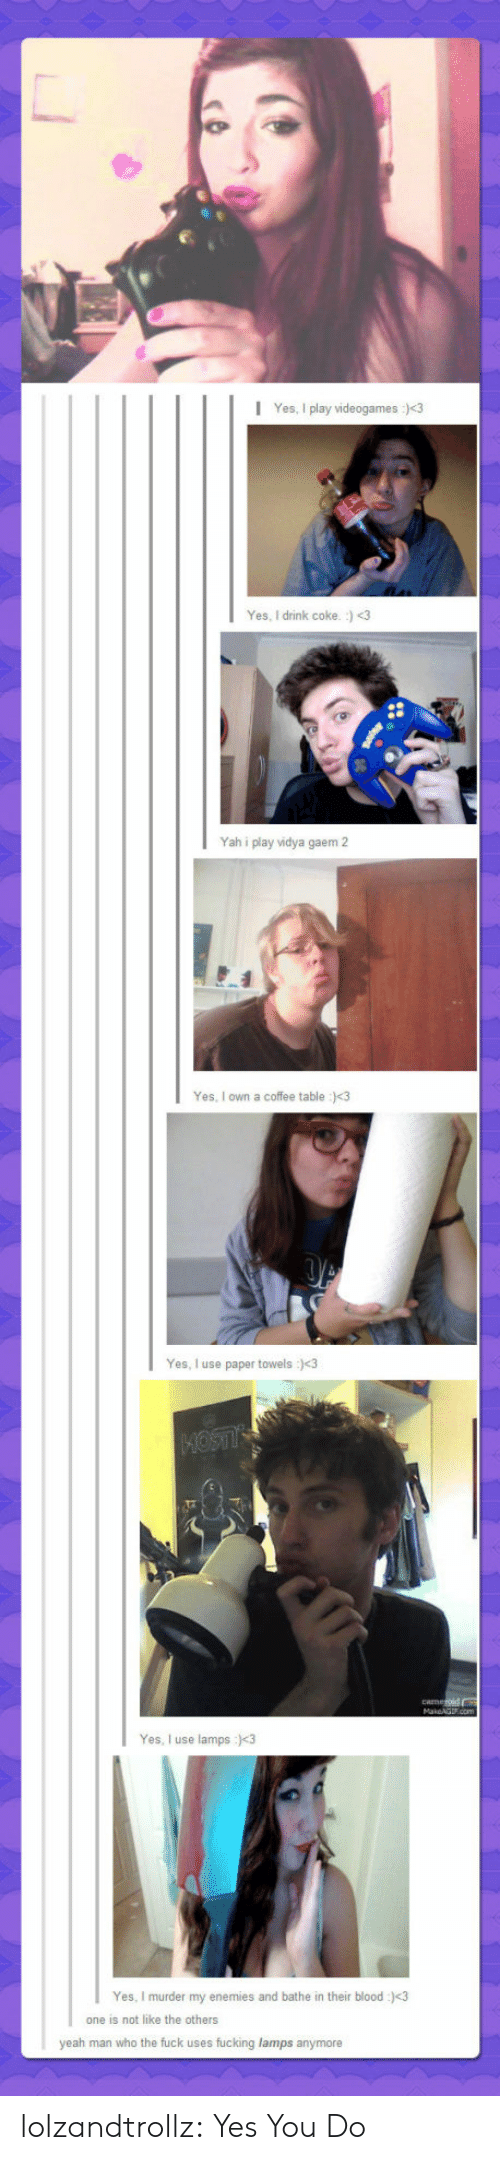 Fucking, Tumblr, and Yah: Yes, I play videogames :3  Yes, I drink coke. :) <3  Yah i play vidya gaem 2  Yes, I own a coffee table :)<3  Yes, I use paper towels :<3  1MOSTIY  Yes, I use lamps :<3  Yes, I murder my enemies and bathe  their blood :)<3  one is not like the others  yeah man who the fuck uses fucking lamps anymore lolzandtrollz:  Yes You Do